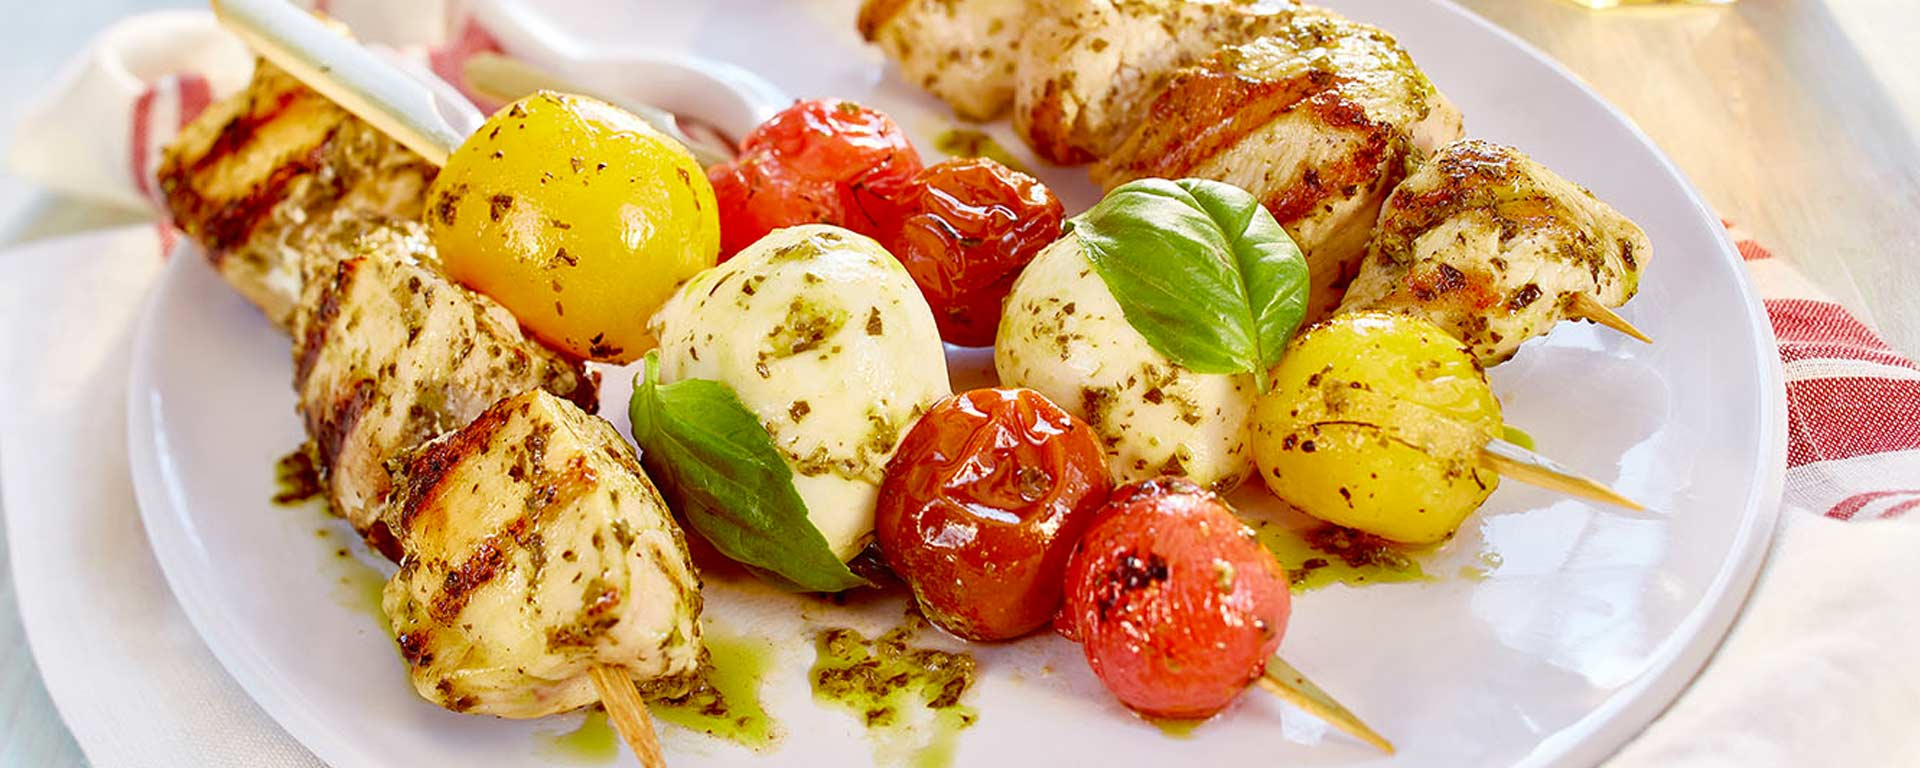 Photo for - Grilled Chicken & Caprese Skewers